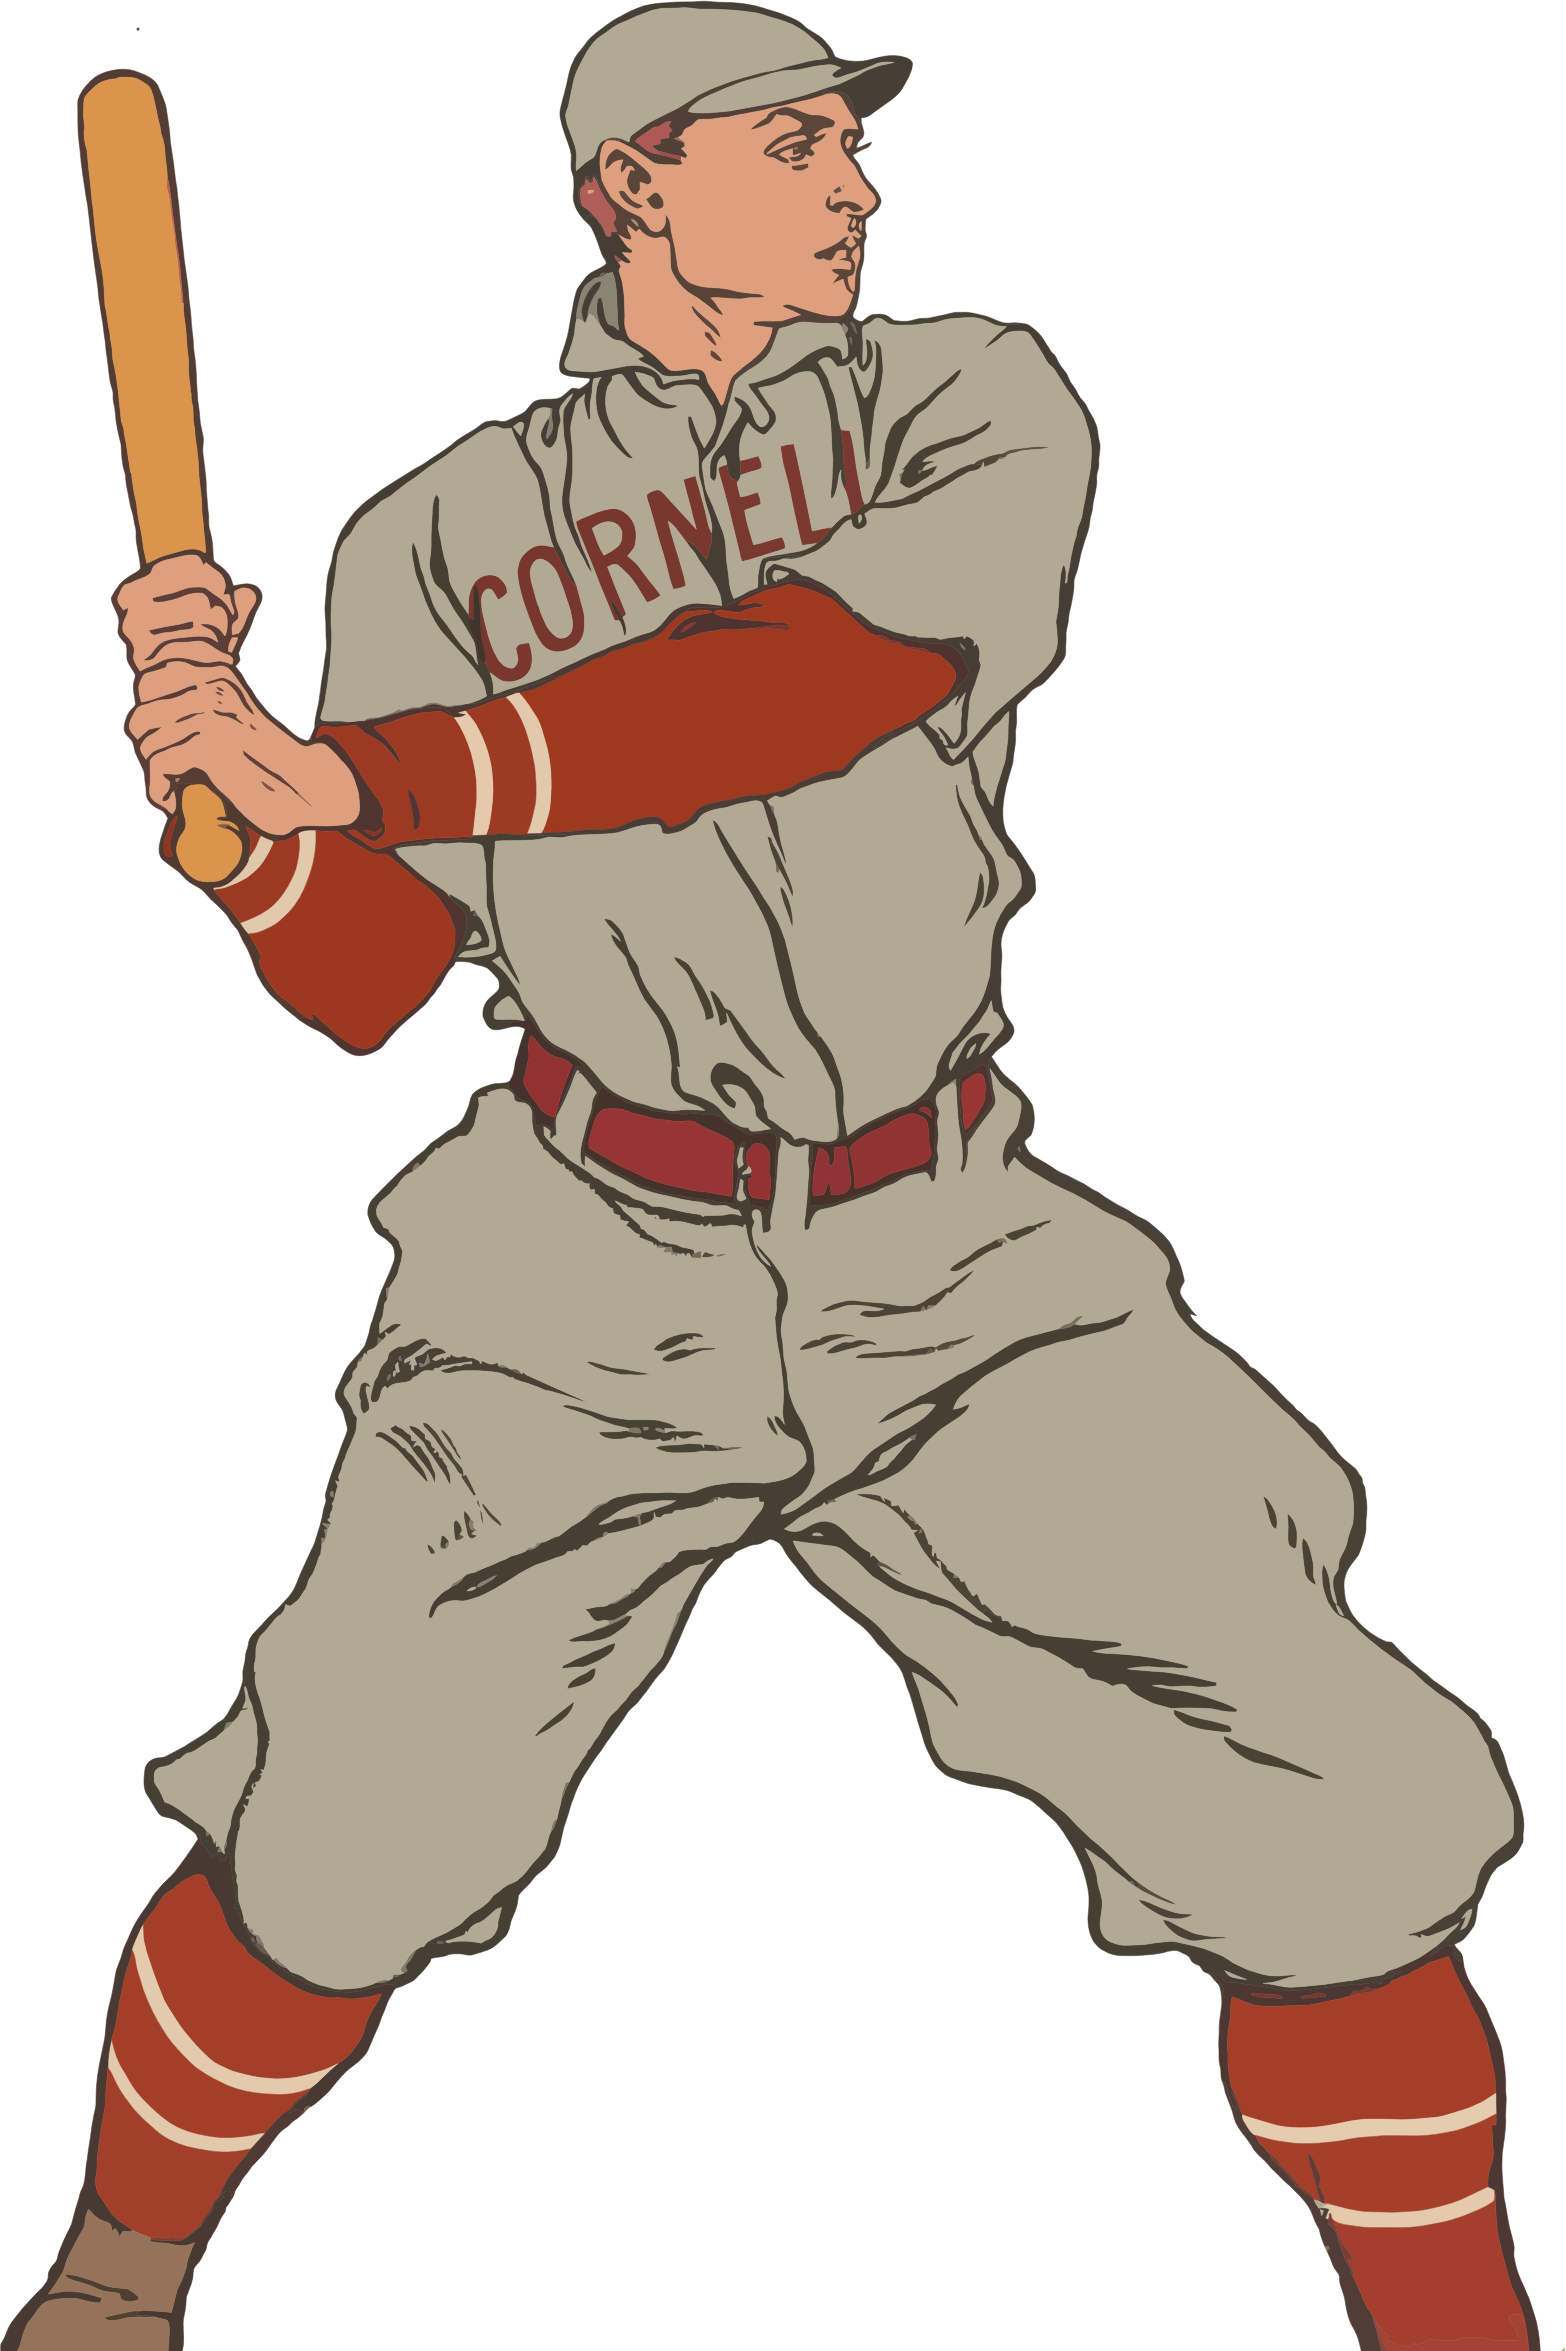 Vintage player big image. Person clipart baseball